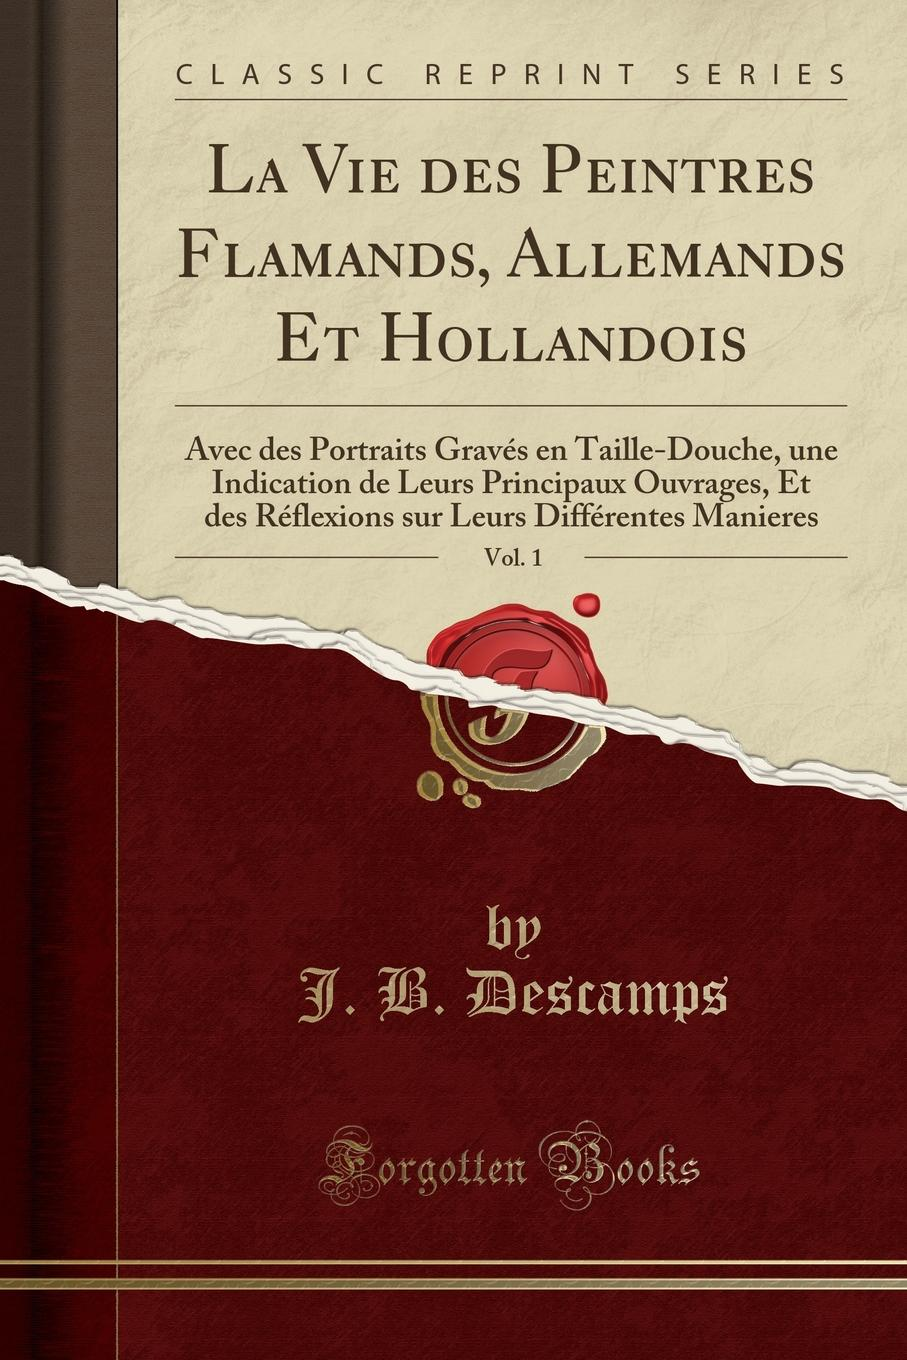 J. B. Descamps La Vie des Peintres Flamands, Allemands Et Hollandois, Vol. 1. Avec des Portraits Graves en Taille-Douche, une Indication de Leurs Principaux Ouvrages, Et des Reflexions sur Leurs Differentes Manieres (Classic Reprint) jack london the call of the wild annotated and illustrated